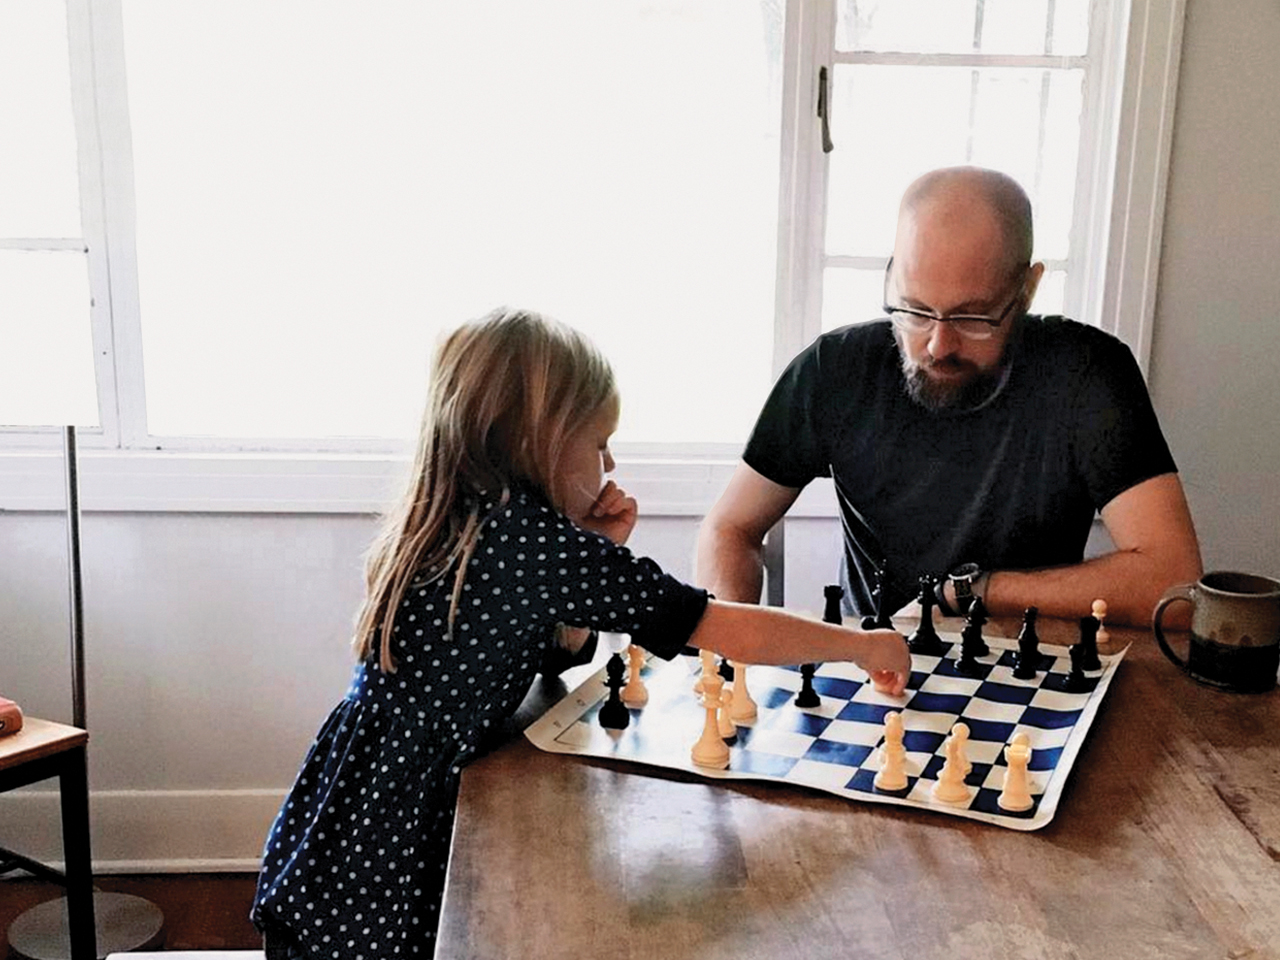 Dad and daughter playing a game of chess